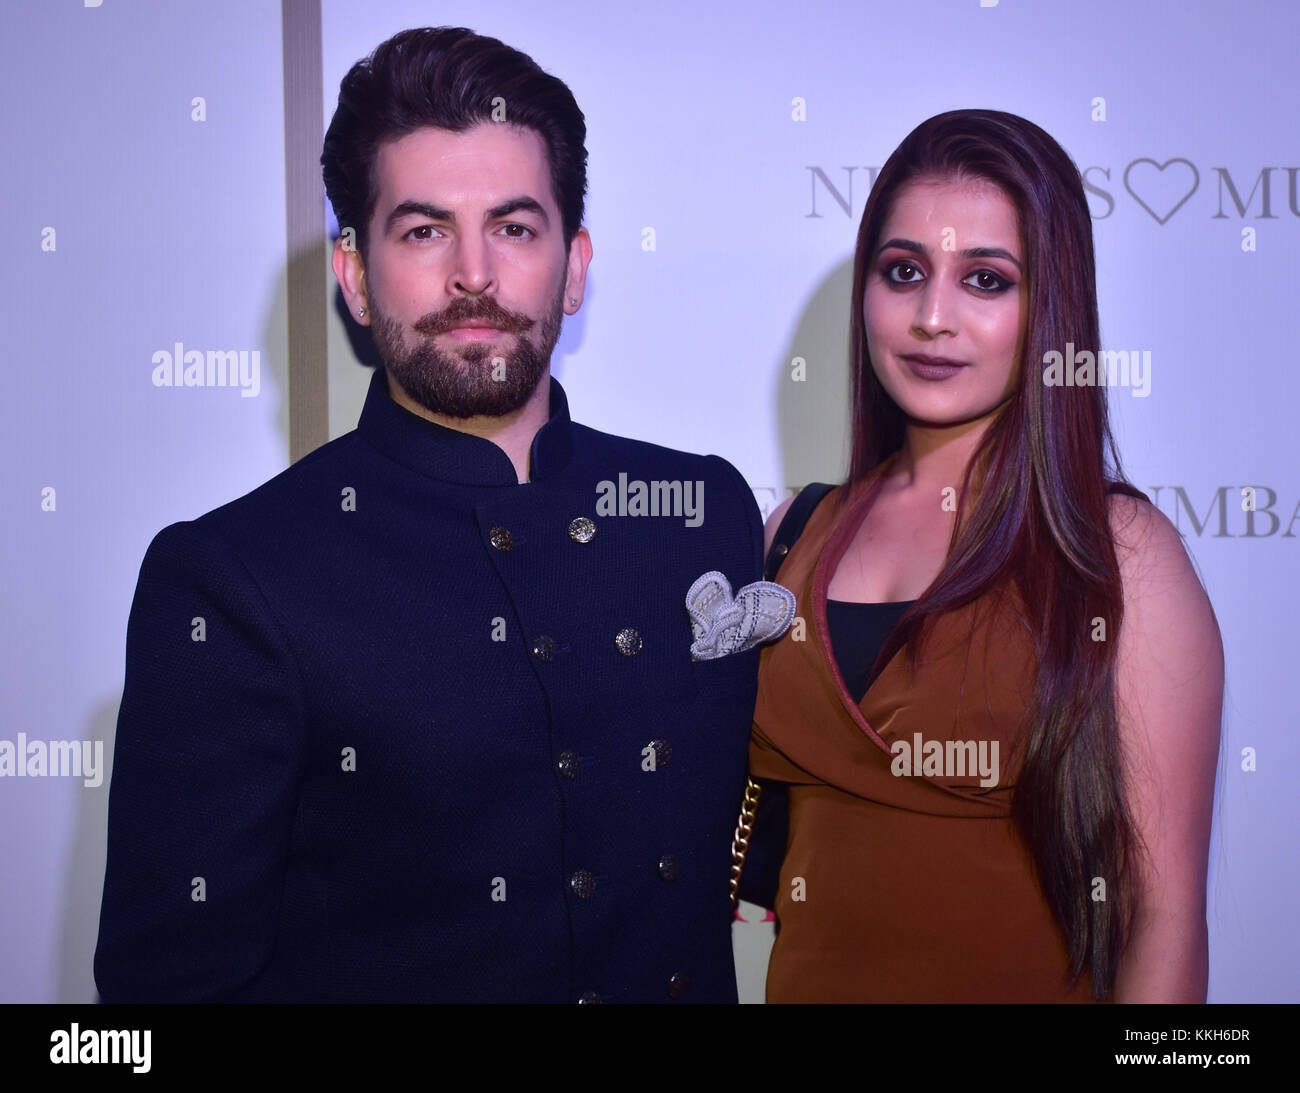 Mumbai, India. 30th Nov, 2017. Indian film actor Neil Nitin Mukesh attend the Popular ethnic brand Neeru's an exclusive Stock Photo